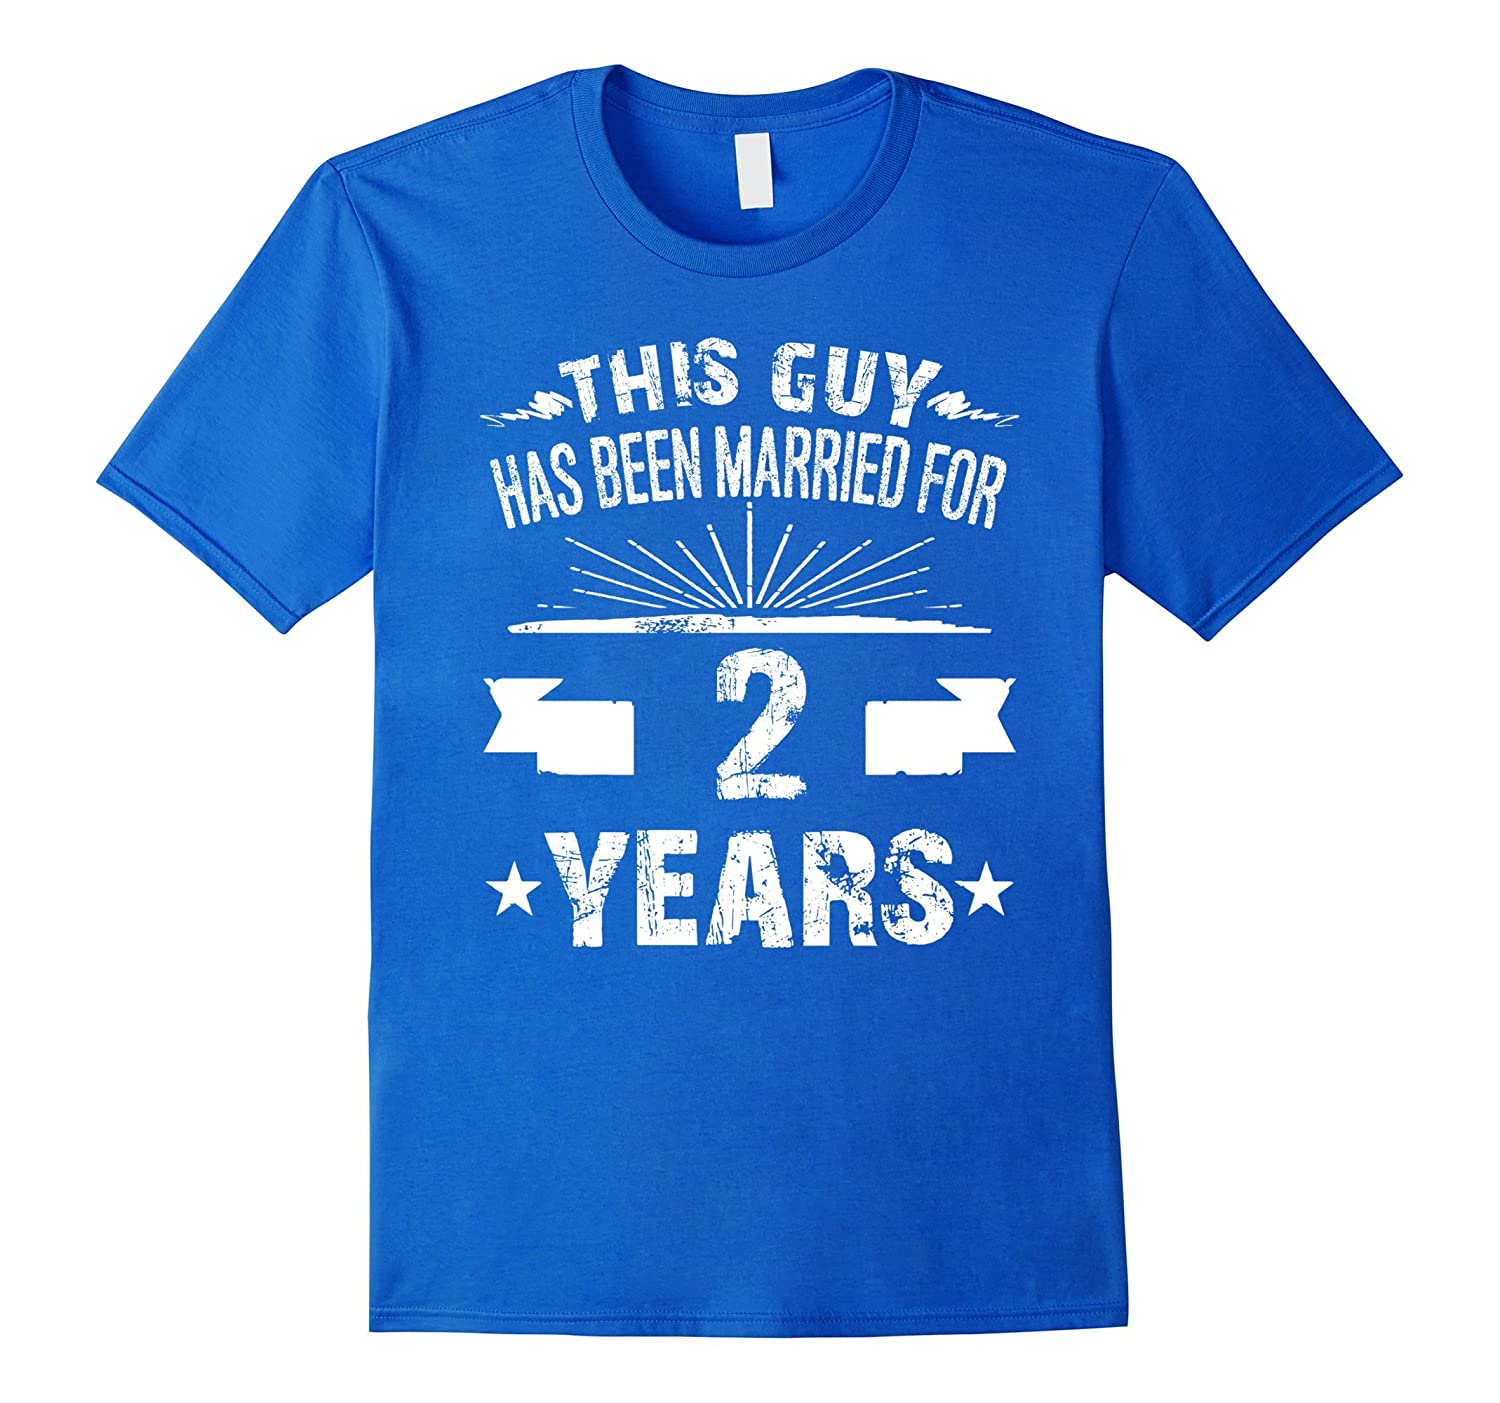 13th Wedding Anniversary Gift Ideas For Him: 2nd Wedding Anniversary Gifts 2 Year Shirt For Him-CD